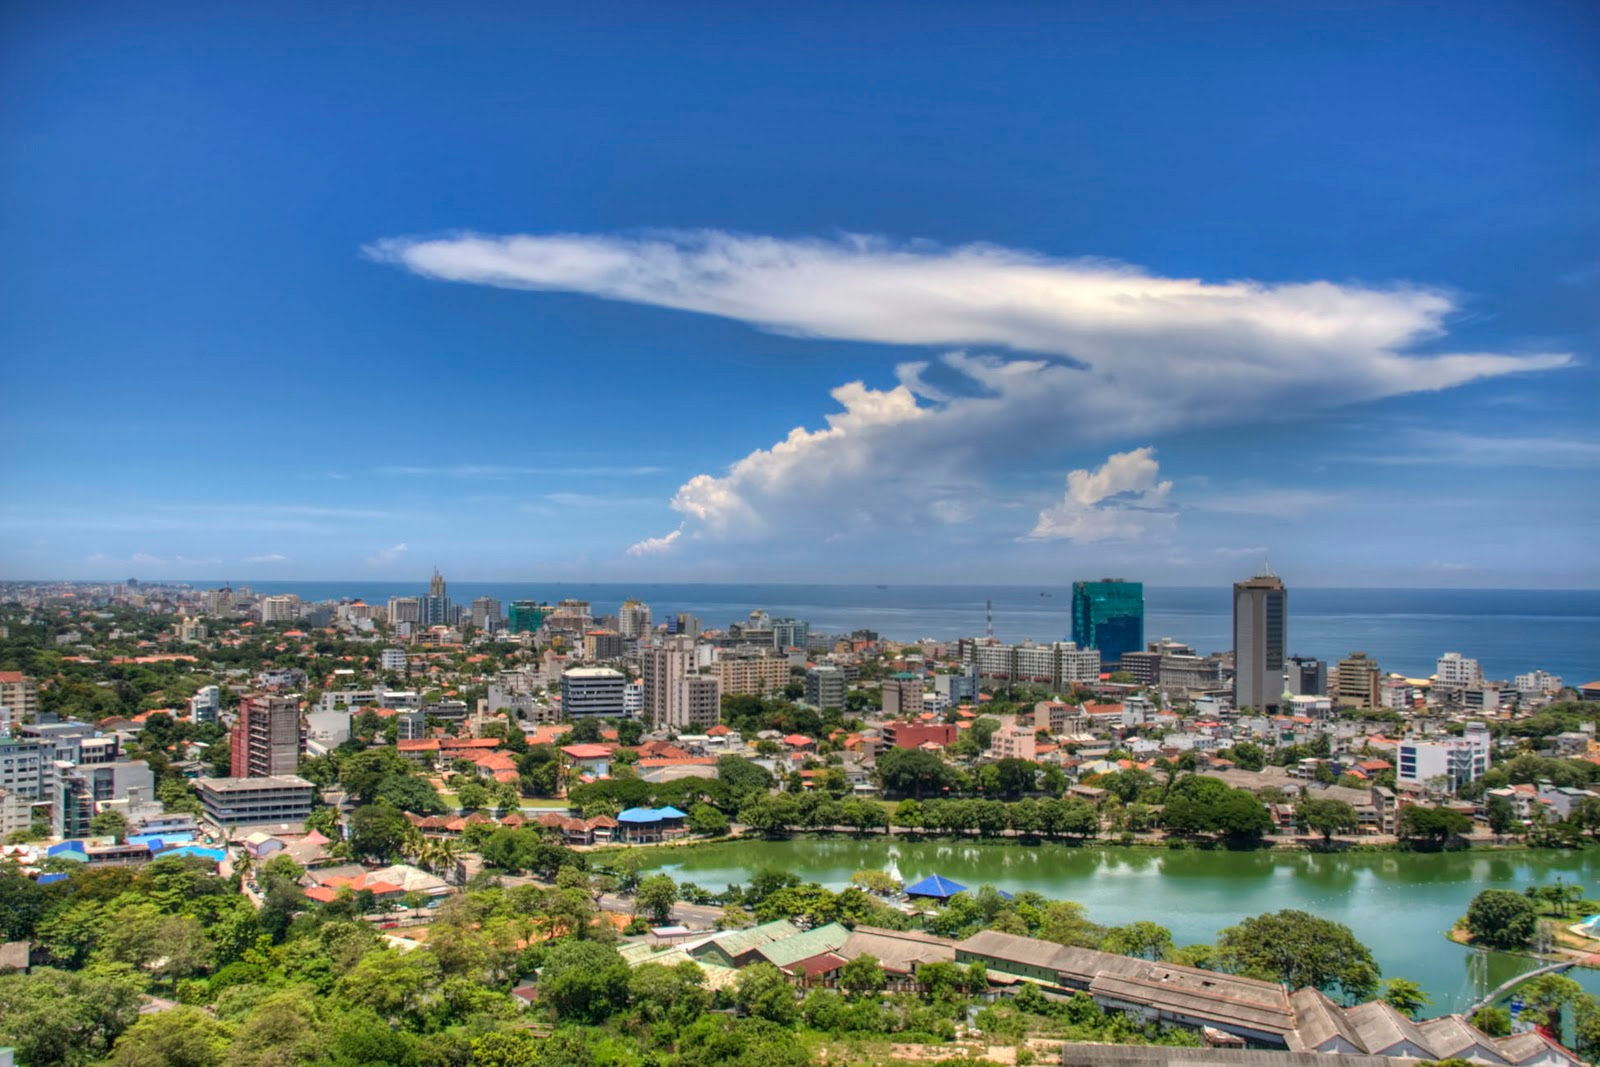 the city of colombo Port city colombo is a brand new city development built as an extension of the central business district of sri lanka's vibrant commercial capital, colombo.